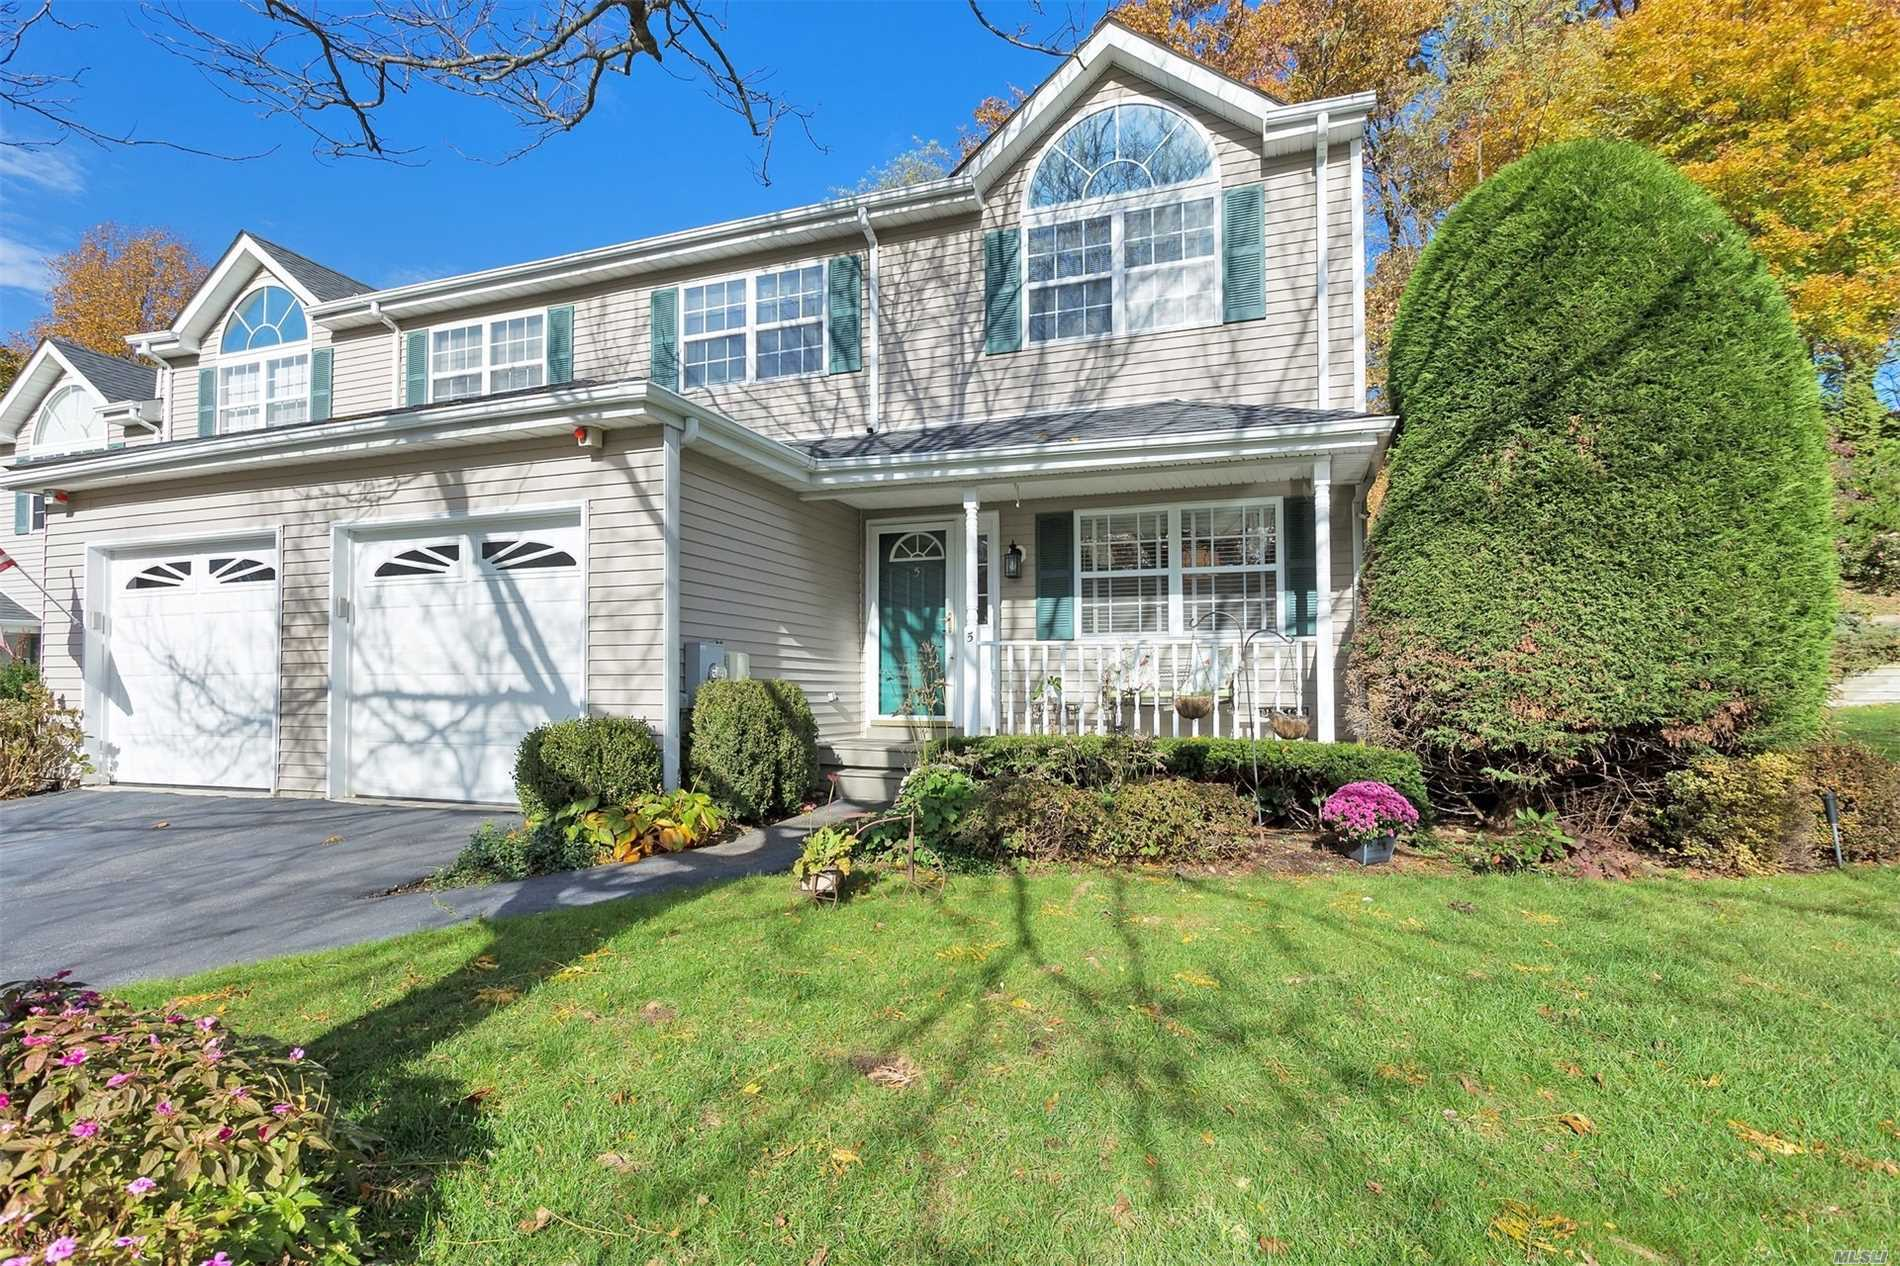 Sun Drenched Corner Townhouse Is Move-In-Ready. Entry To Generous Open Plan Living. Country Style Chefs' Kitchen Has New Stove, Granite Tops & Drawer Dishwasher With Separate Breakfast/Dining Area. Luminous Living & Dining Room Flows To Large Entertainment Deck. Half Bath & Laundry. Stunning Master Bedroom Boasts Grand Vaulted Ceiling, Master Spa Bath & Walk In Closet. 2 Additional Spacious Bedrooms W/ Full Bath. Fully Finished Multi Use Basement Has Ample Storage. Impeccable Quality Finishes.